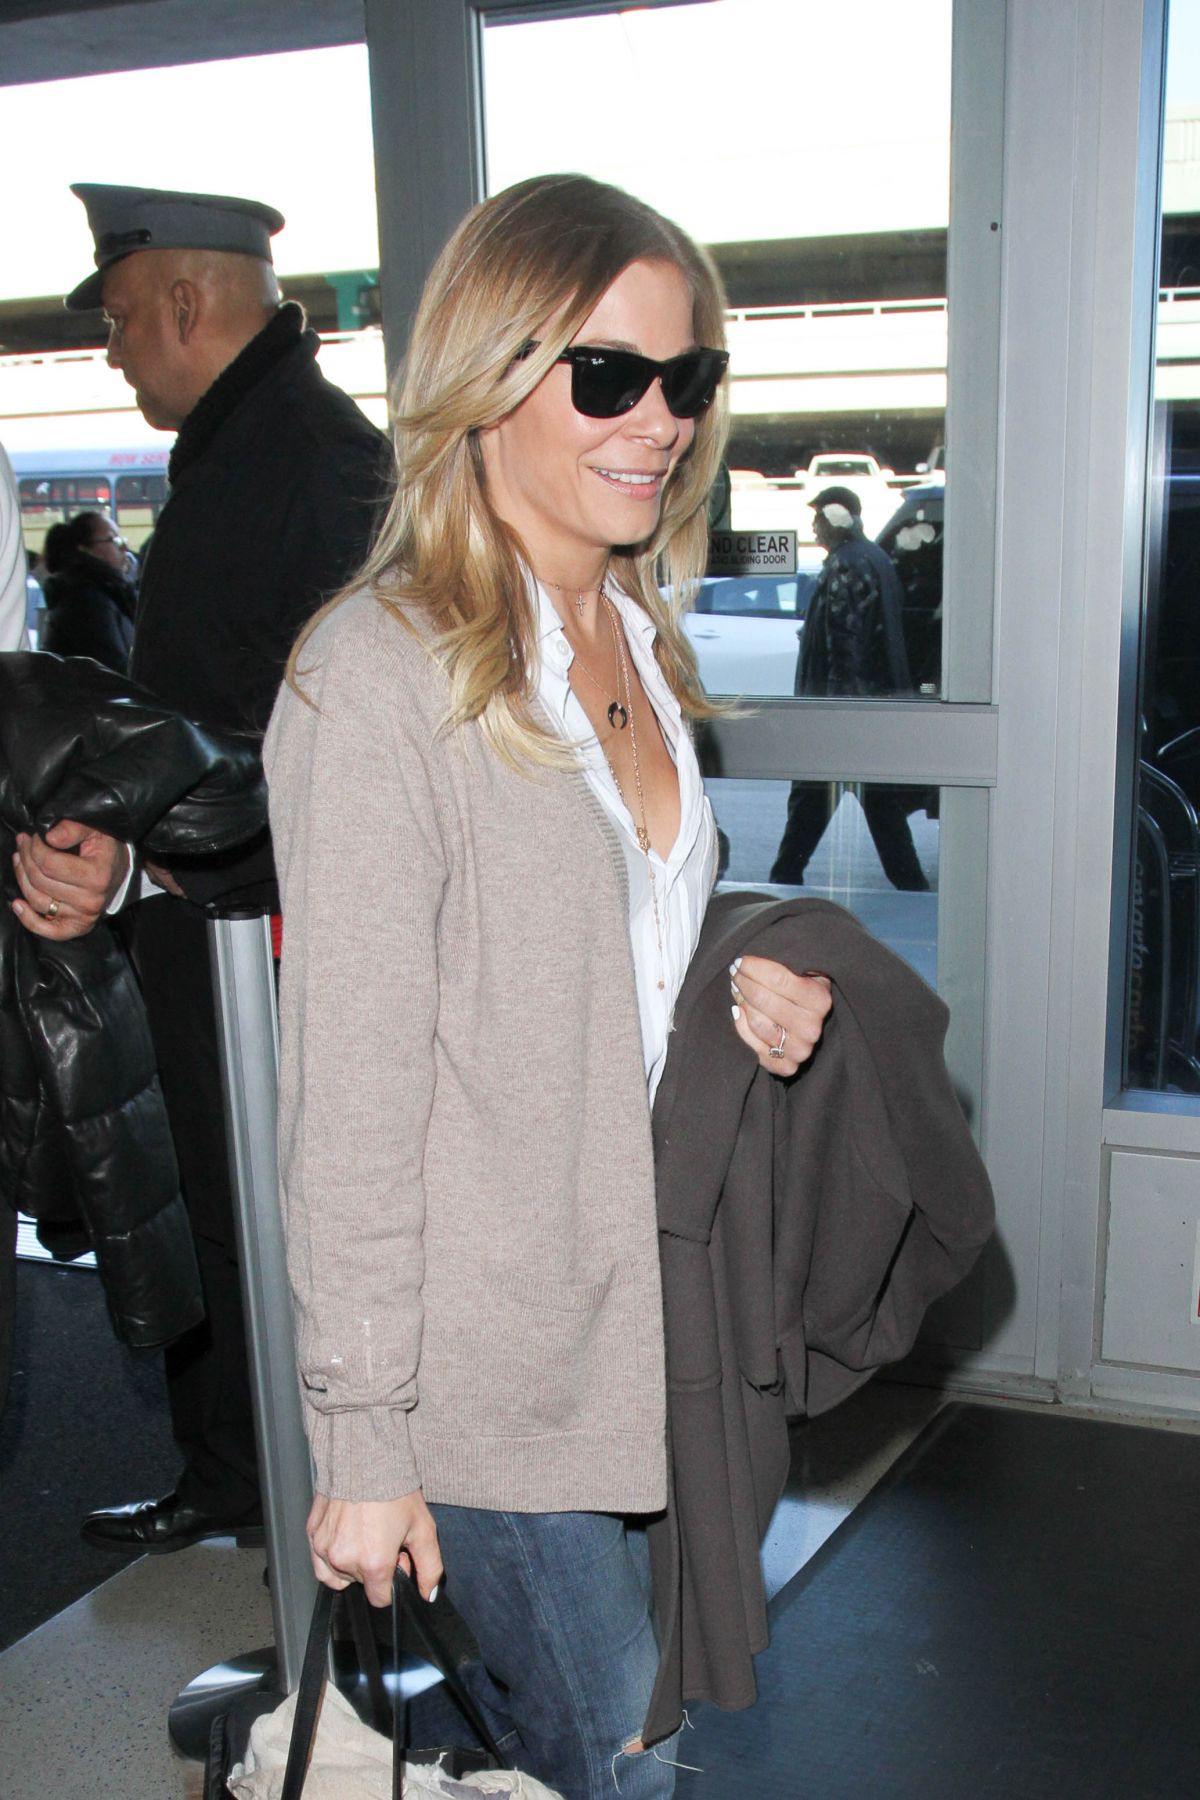 LEANN RIMES at LAX Airport in Los Angeles 12/28/2016